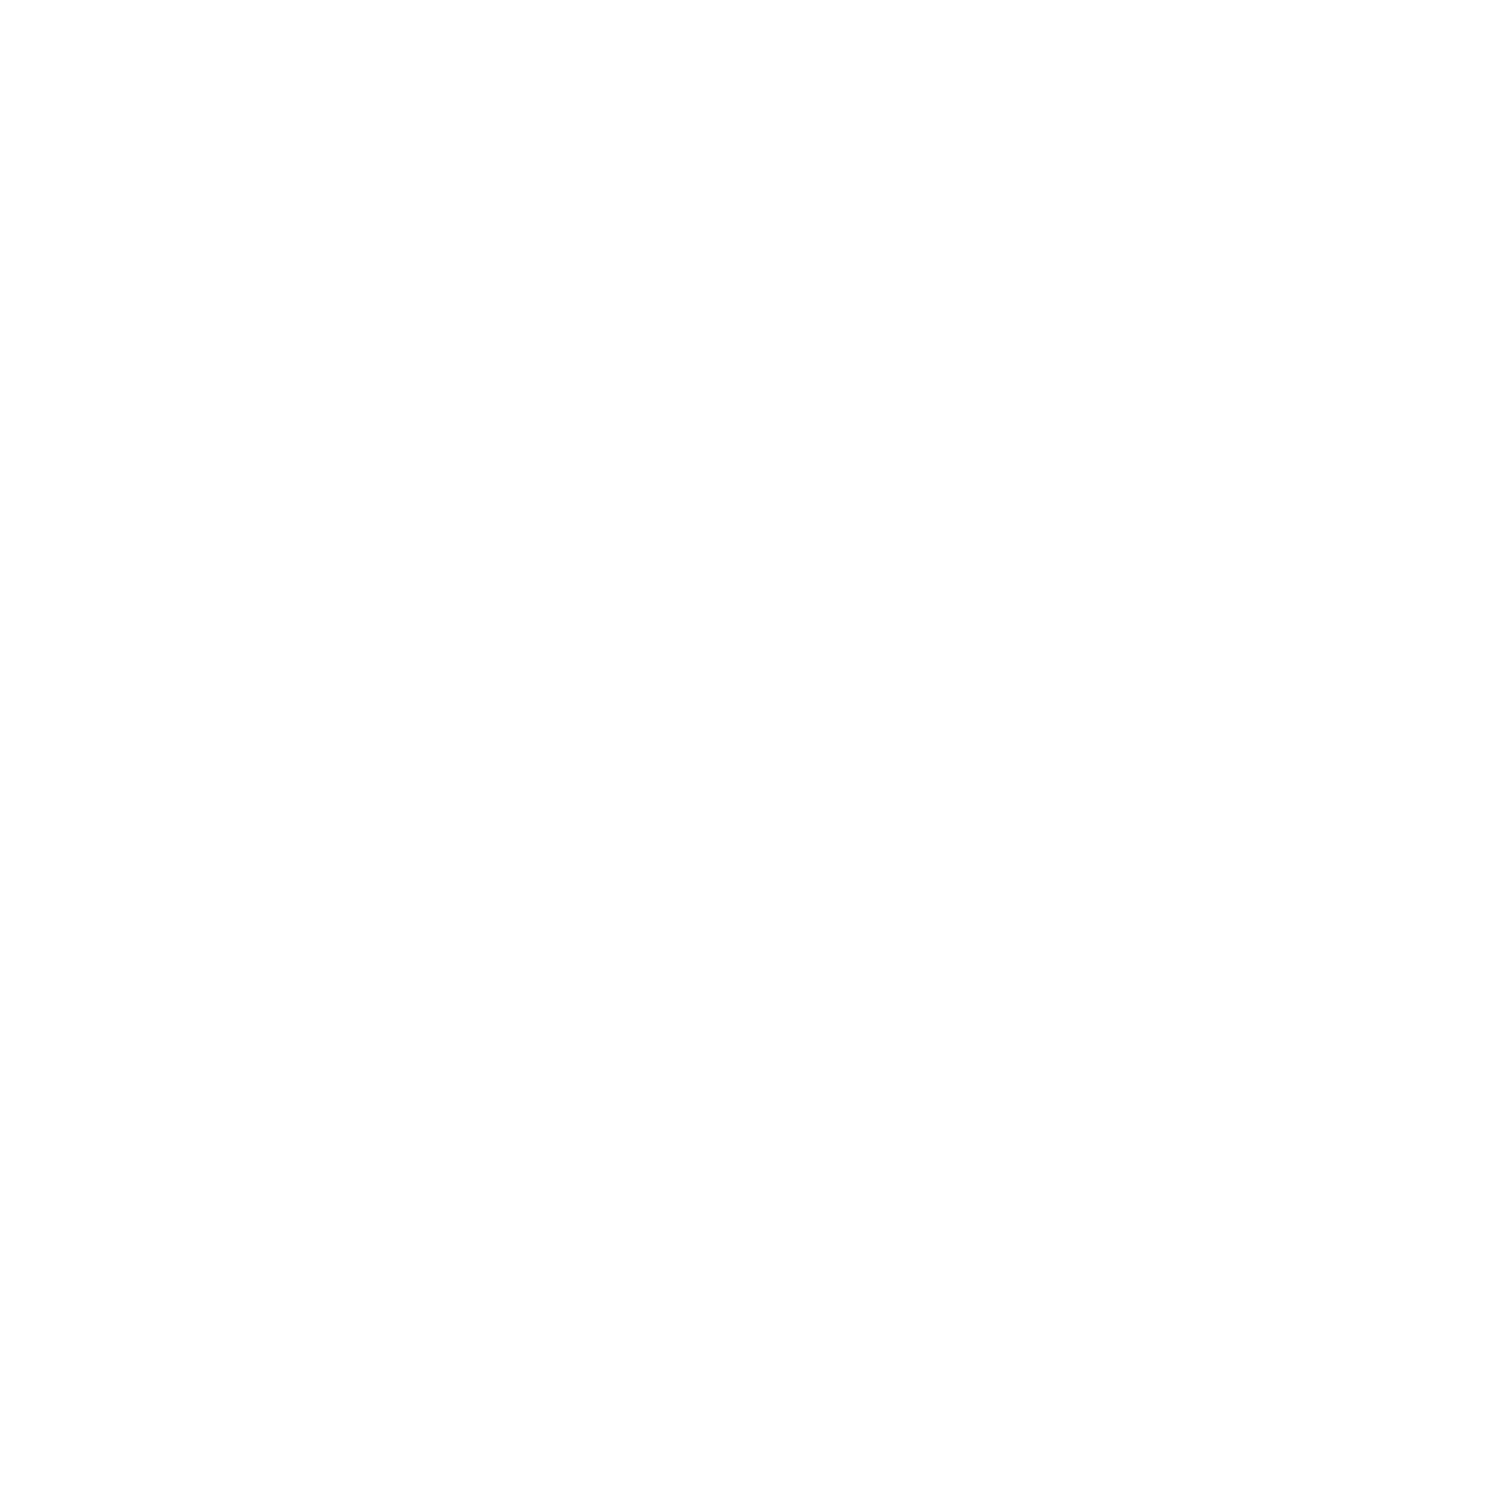 Owl Drug Co - Social Eating House